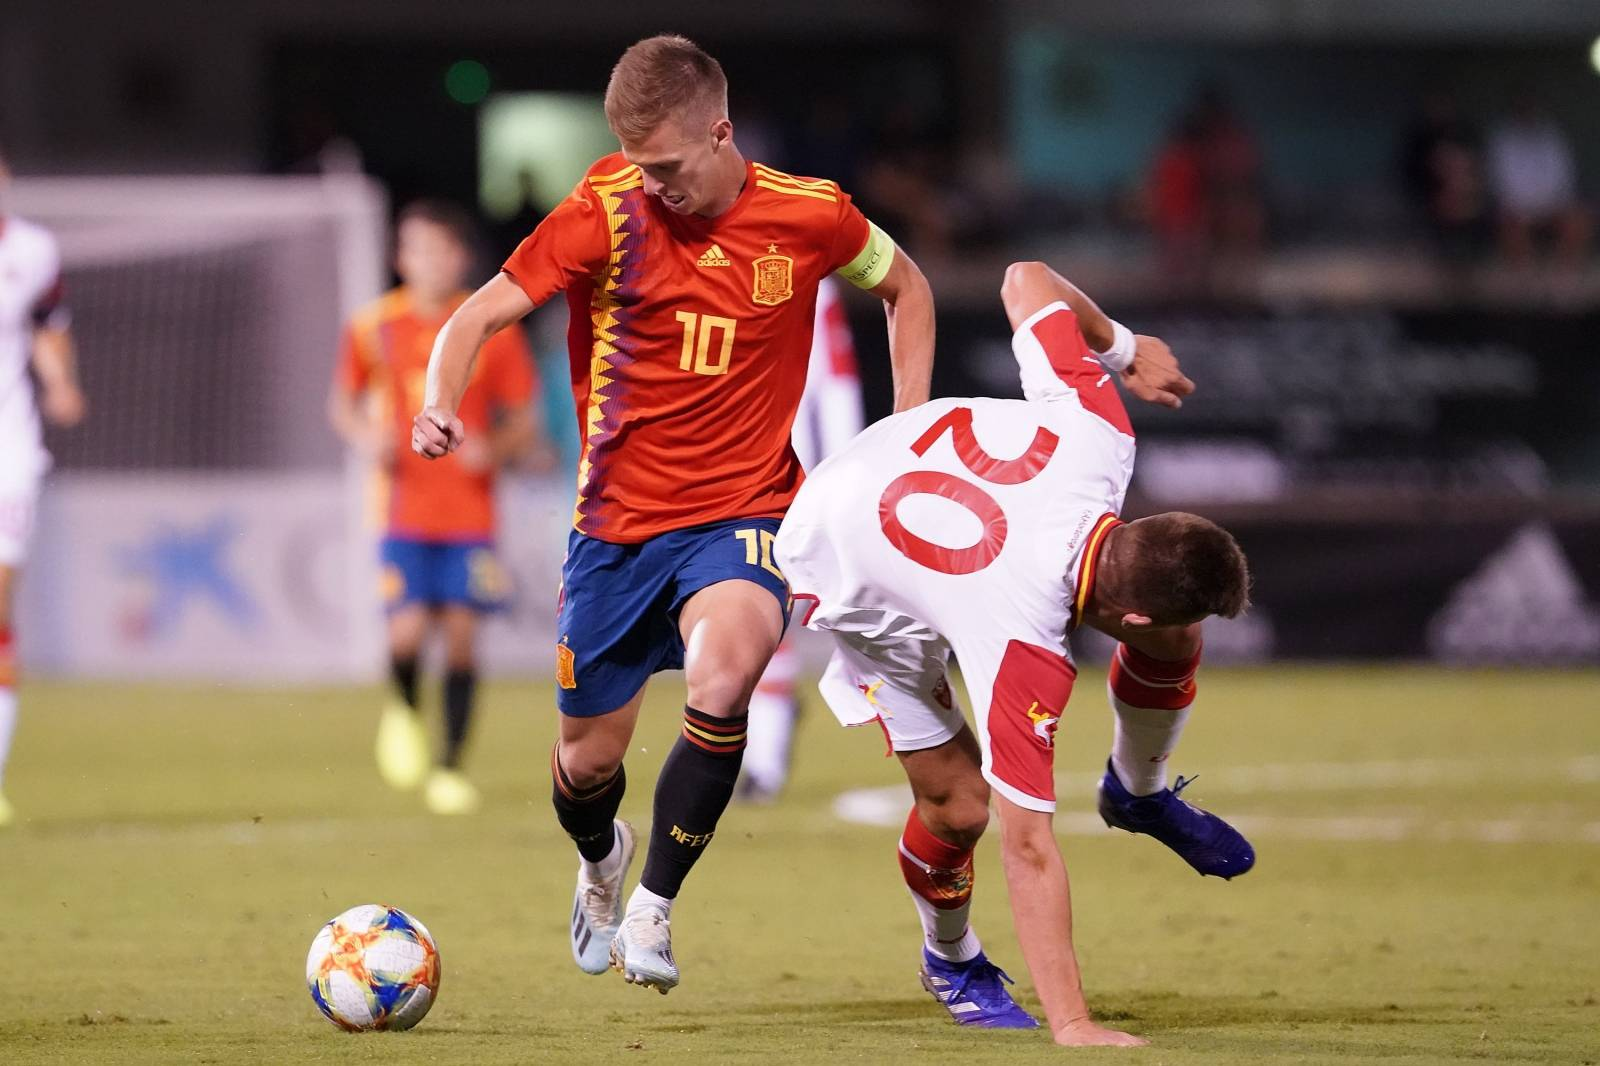 SPAIN v MONTENEGRO. EUROPEAN UNDER-21 CHAMPIONSHIP 2021. GROUP 6. QUALIFYING ROUND.